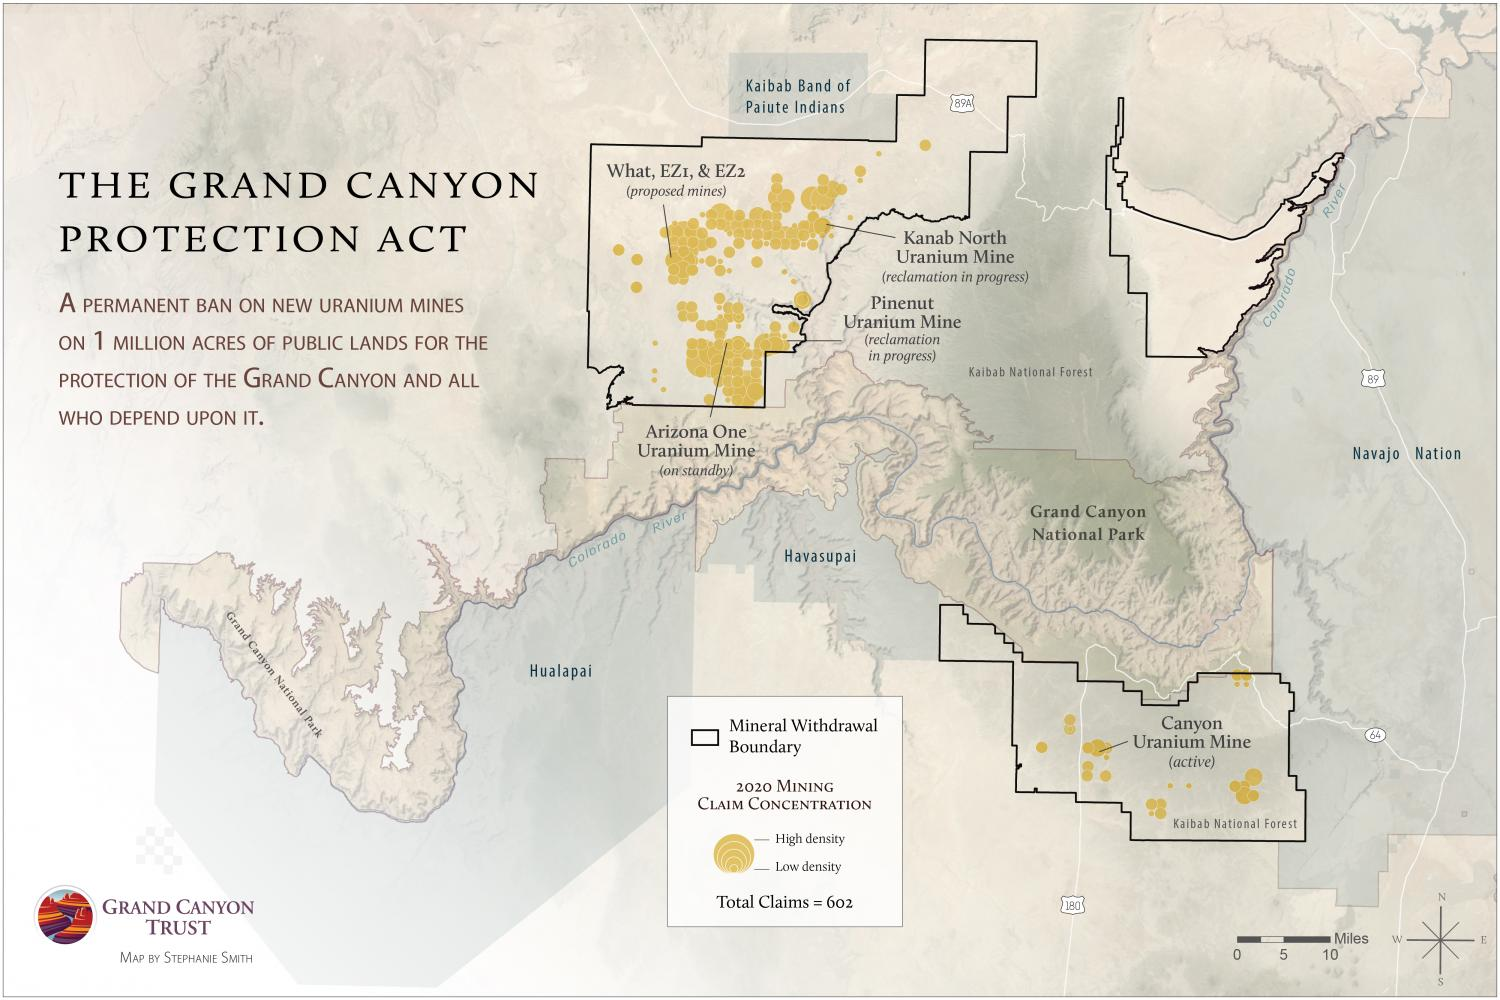 The Grand Canyon Protection Act map